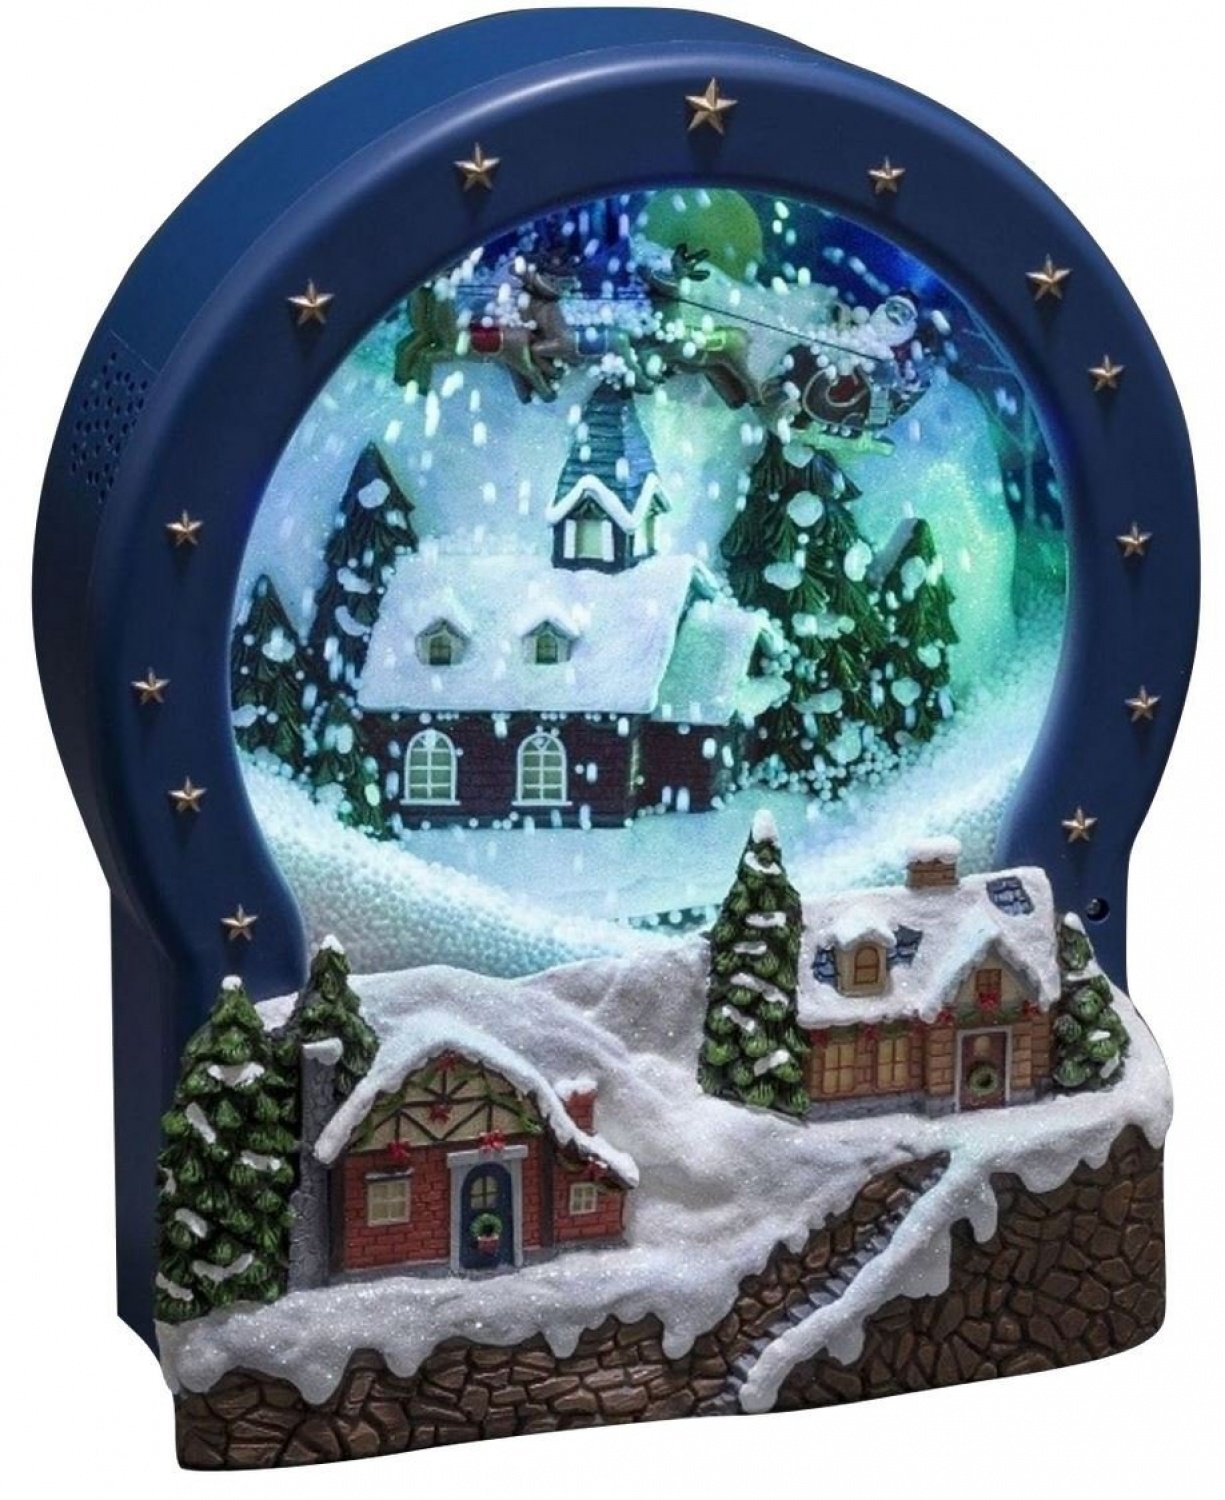 Konstsmide Musical Snow Globe Christmas Scene : Blowing Snow : LED : Mains or Battery : 3438-000 [Energy Class A] Konstsmide @ WOWOOO